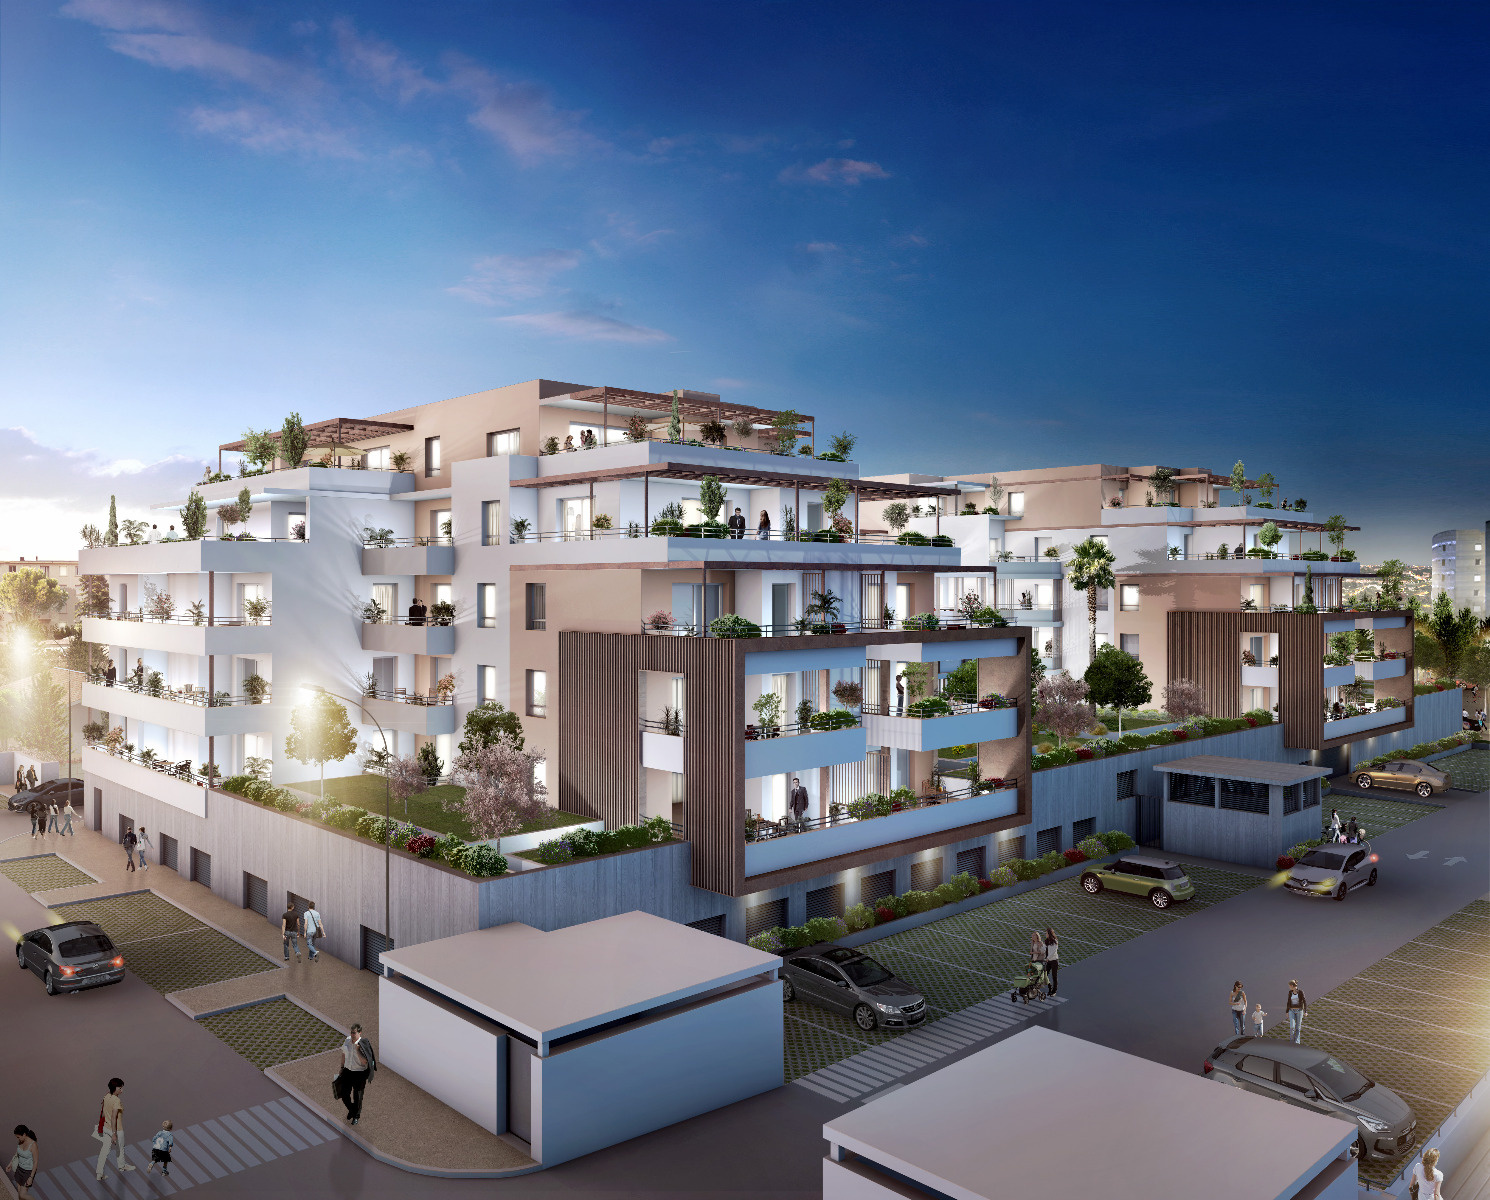 Offres programmes neufs nimes vente appartement neuf type p2 for Vente logement neuf